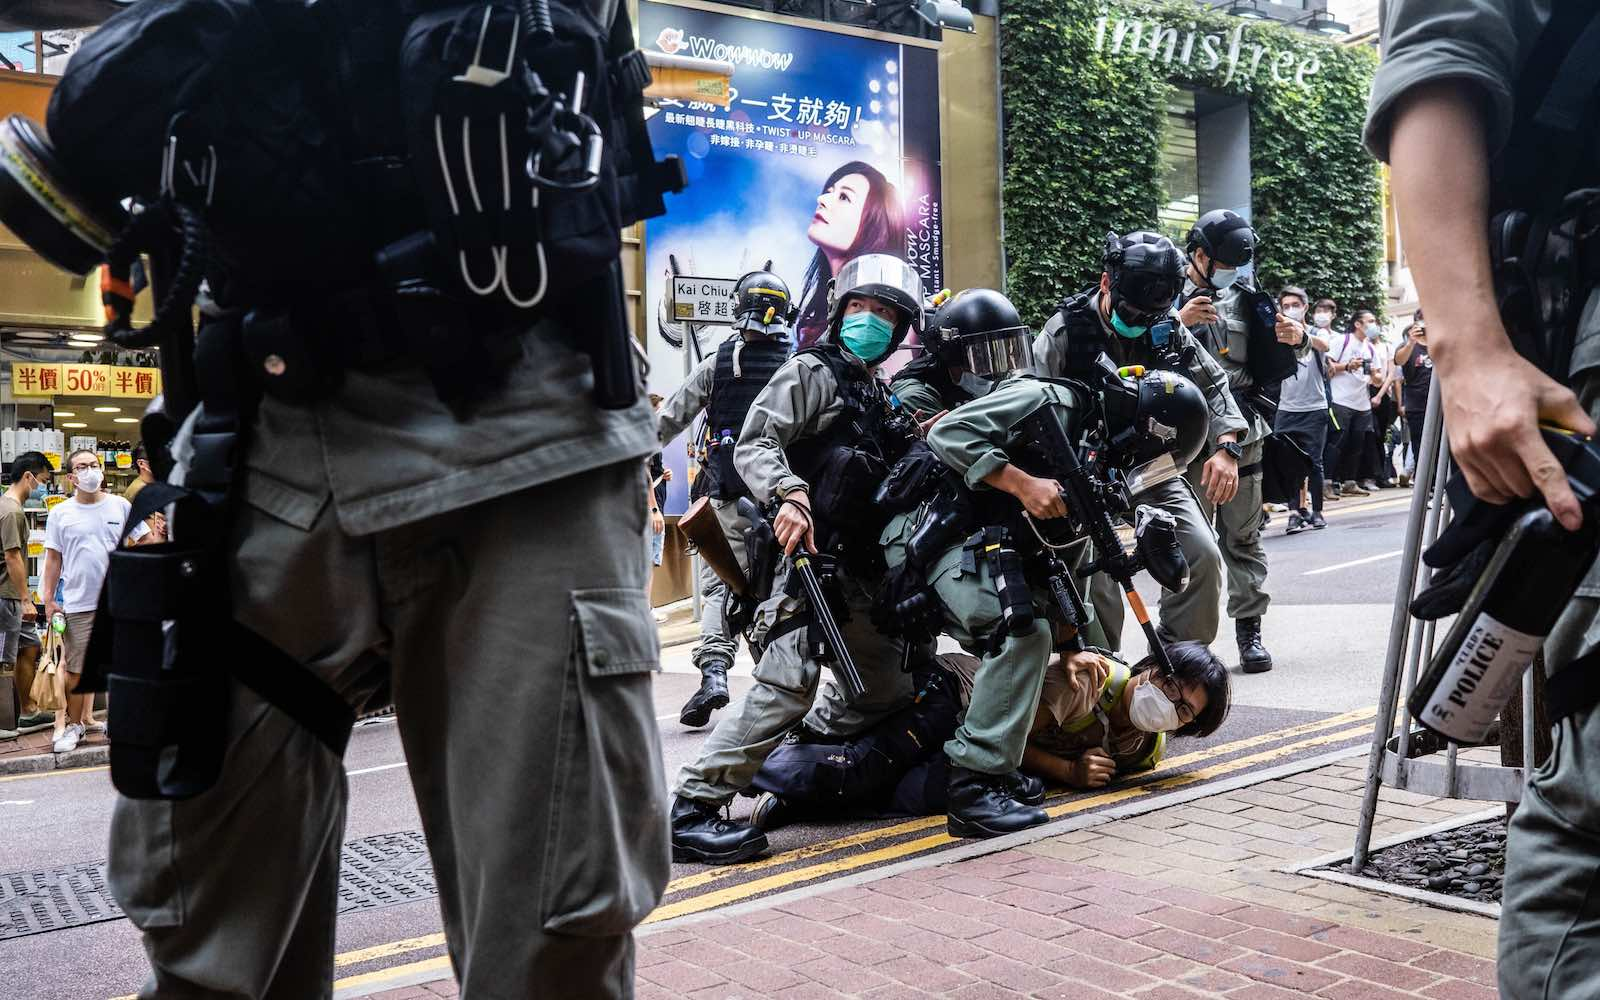 Riot police pin down a protester during a demonstration after the passage of a new security law in Hong Kong, 1 July 2020 (Willie Siau/SOPA Images/LightRocket via Getty Images)